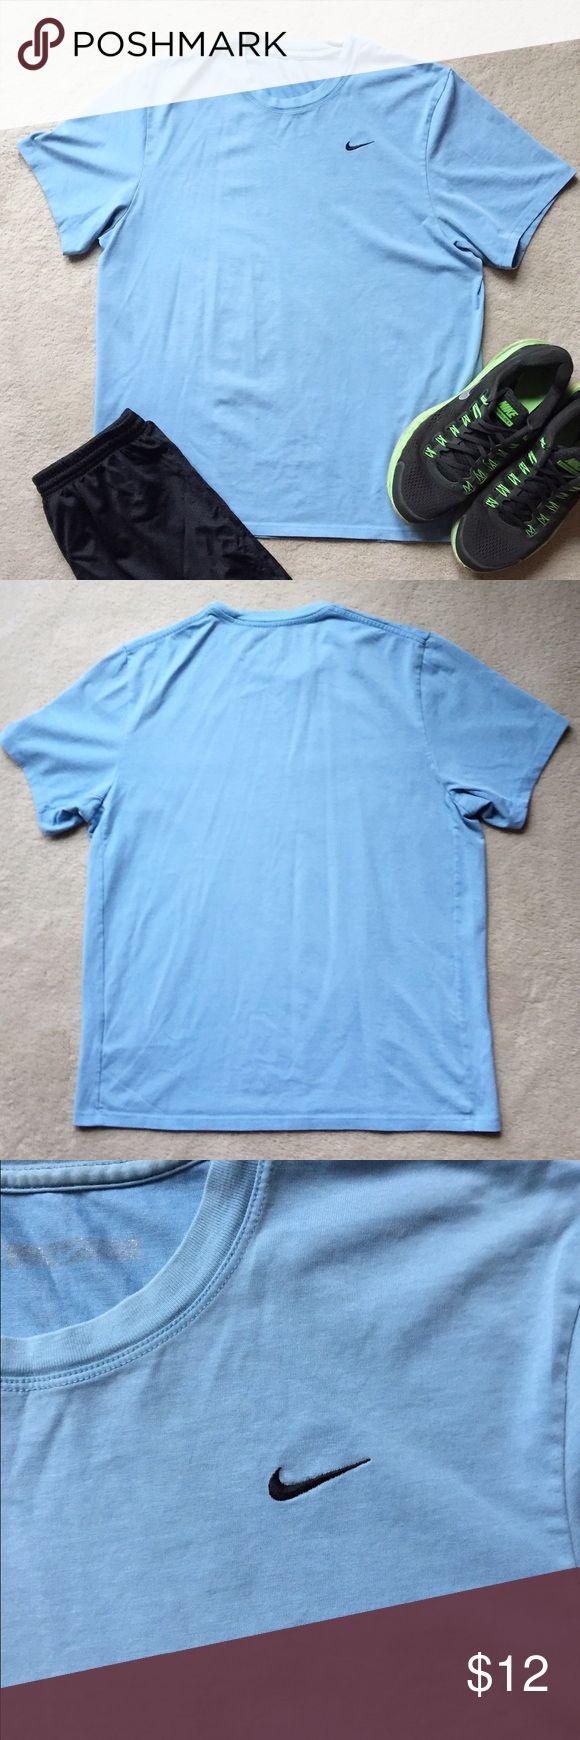 Nike Mens' Light Blue Shirt Versatile top for everyday. This Nike top is made of 60% cotton and 40% polyester. Nike Shirts Tees - Short Sleeve